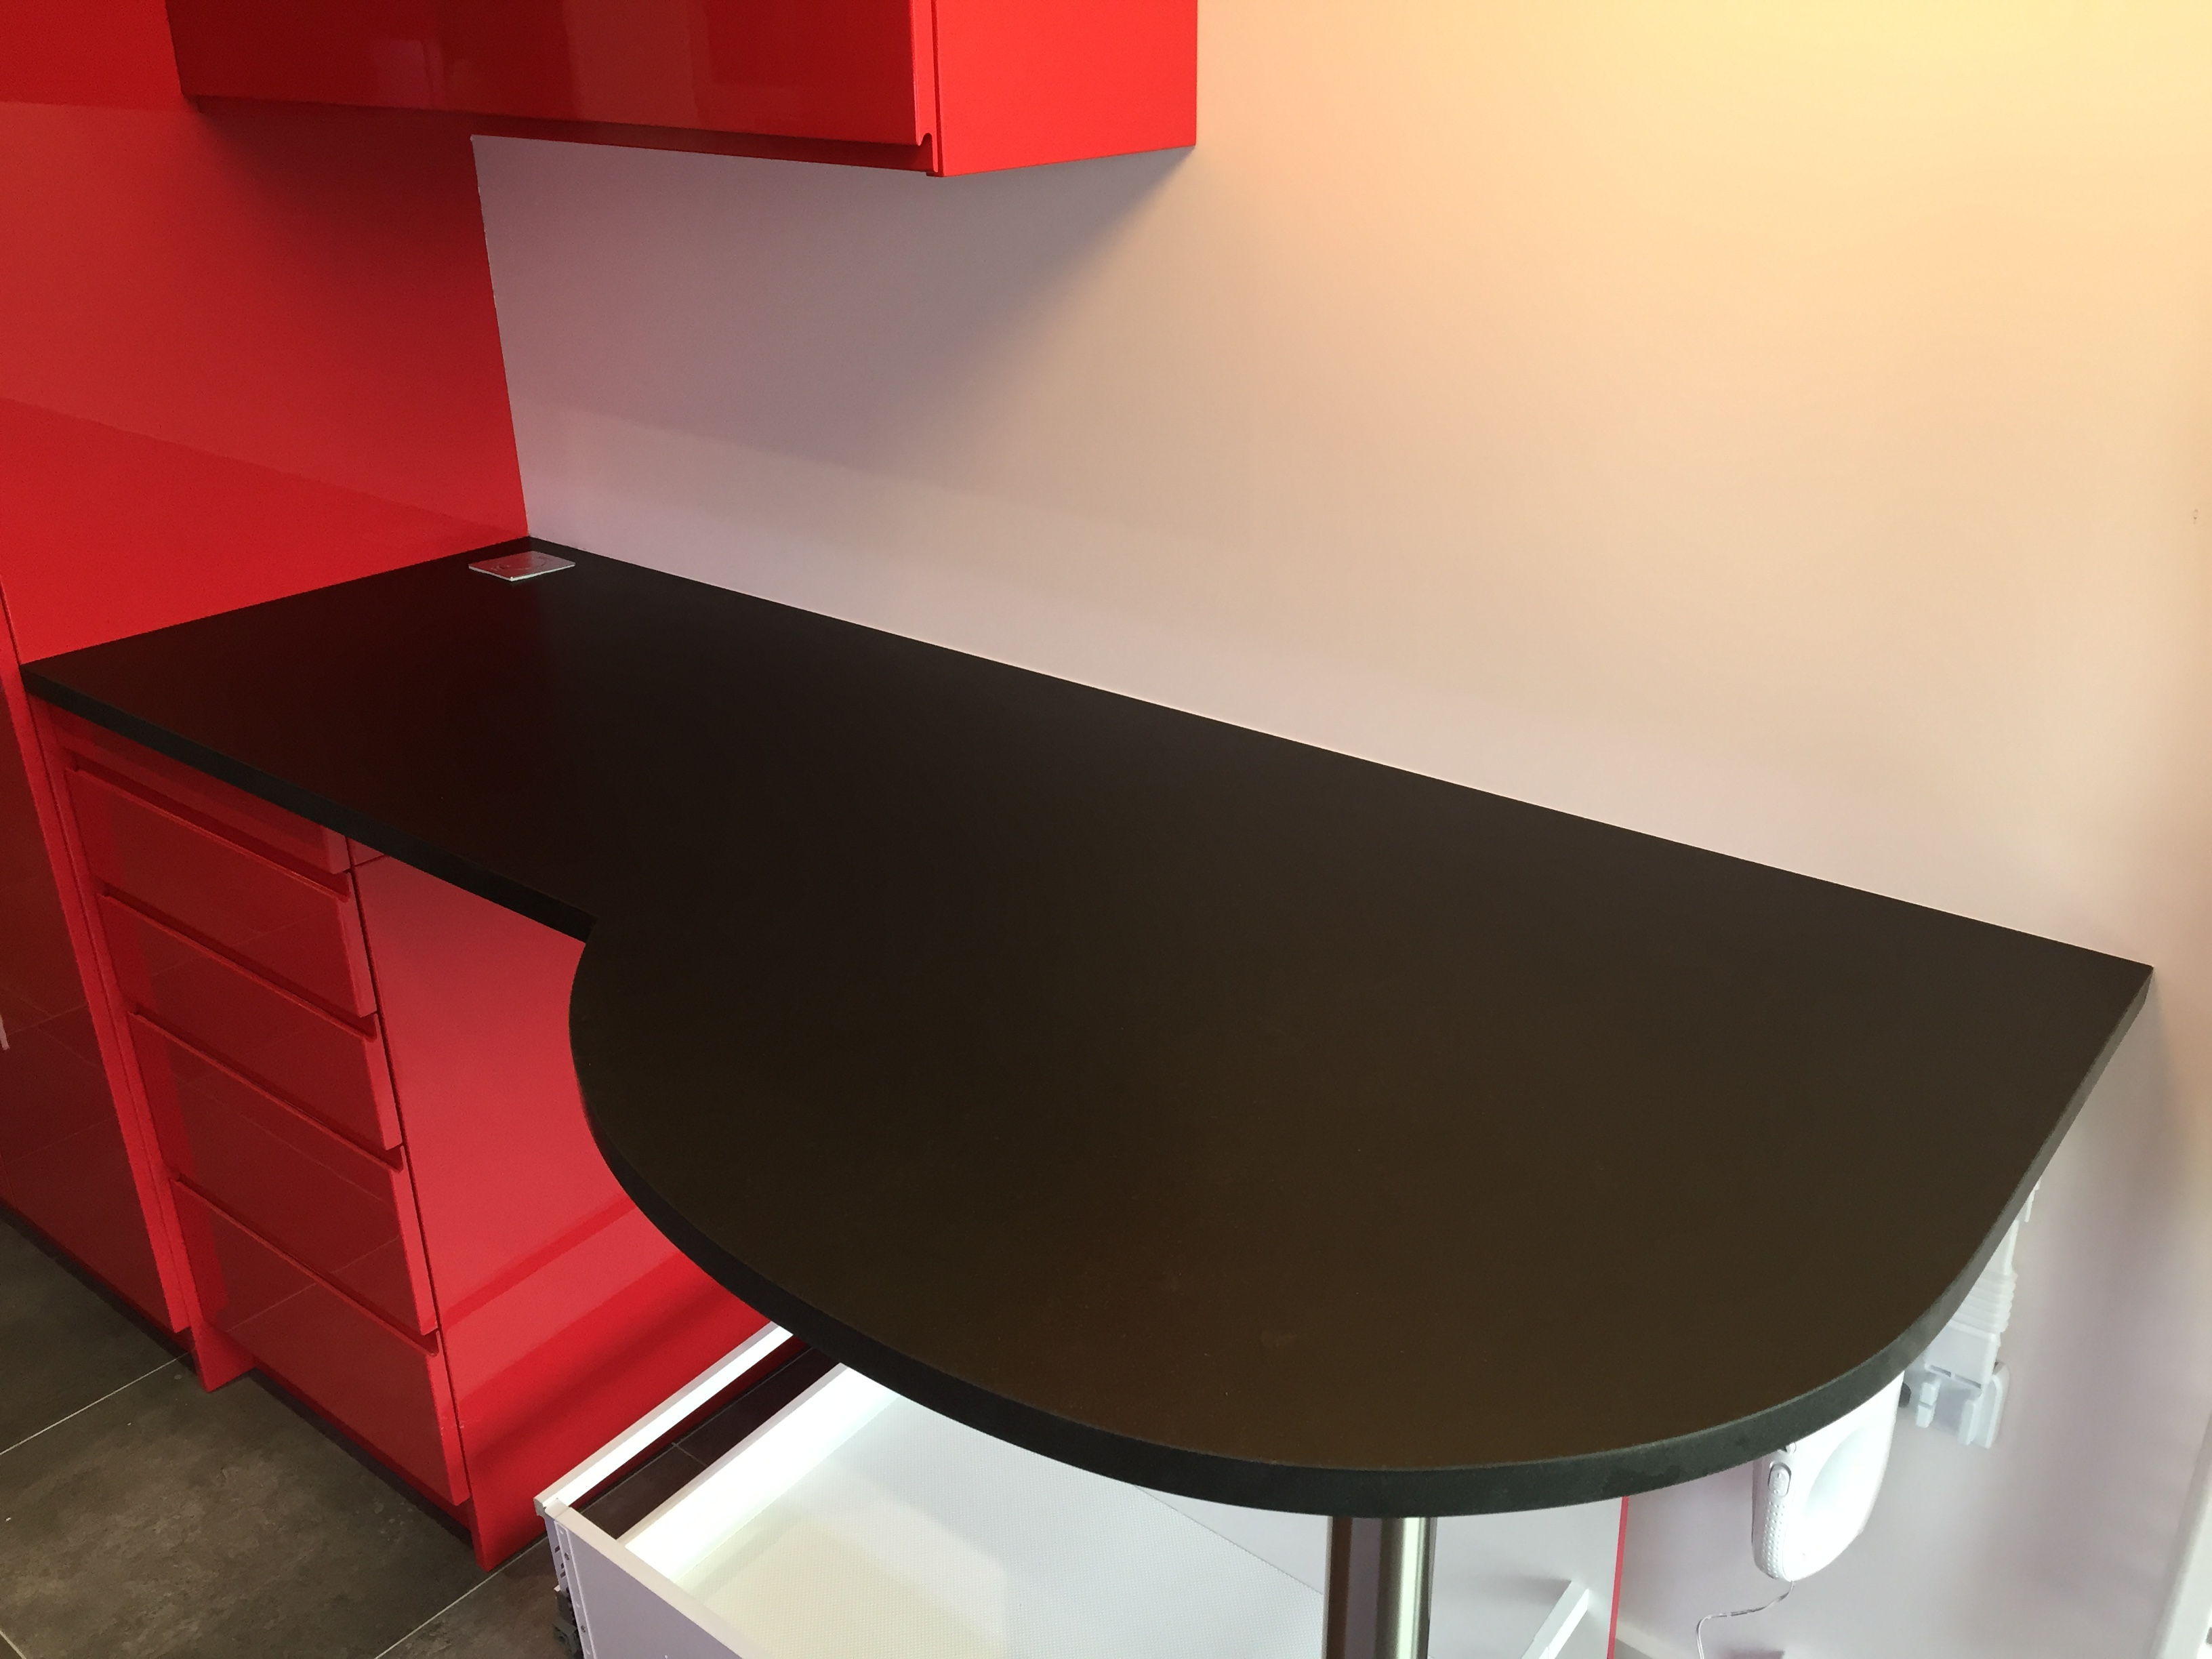 TABLE EN GRANIT SUR MESURE A PARIS